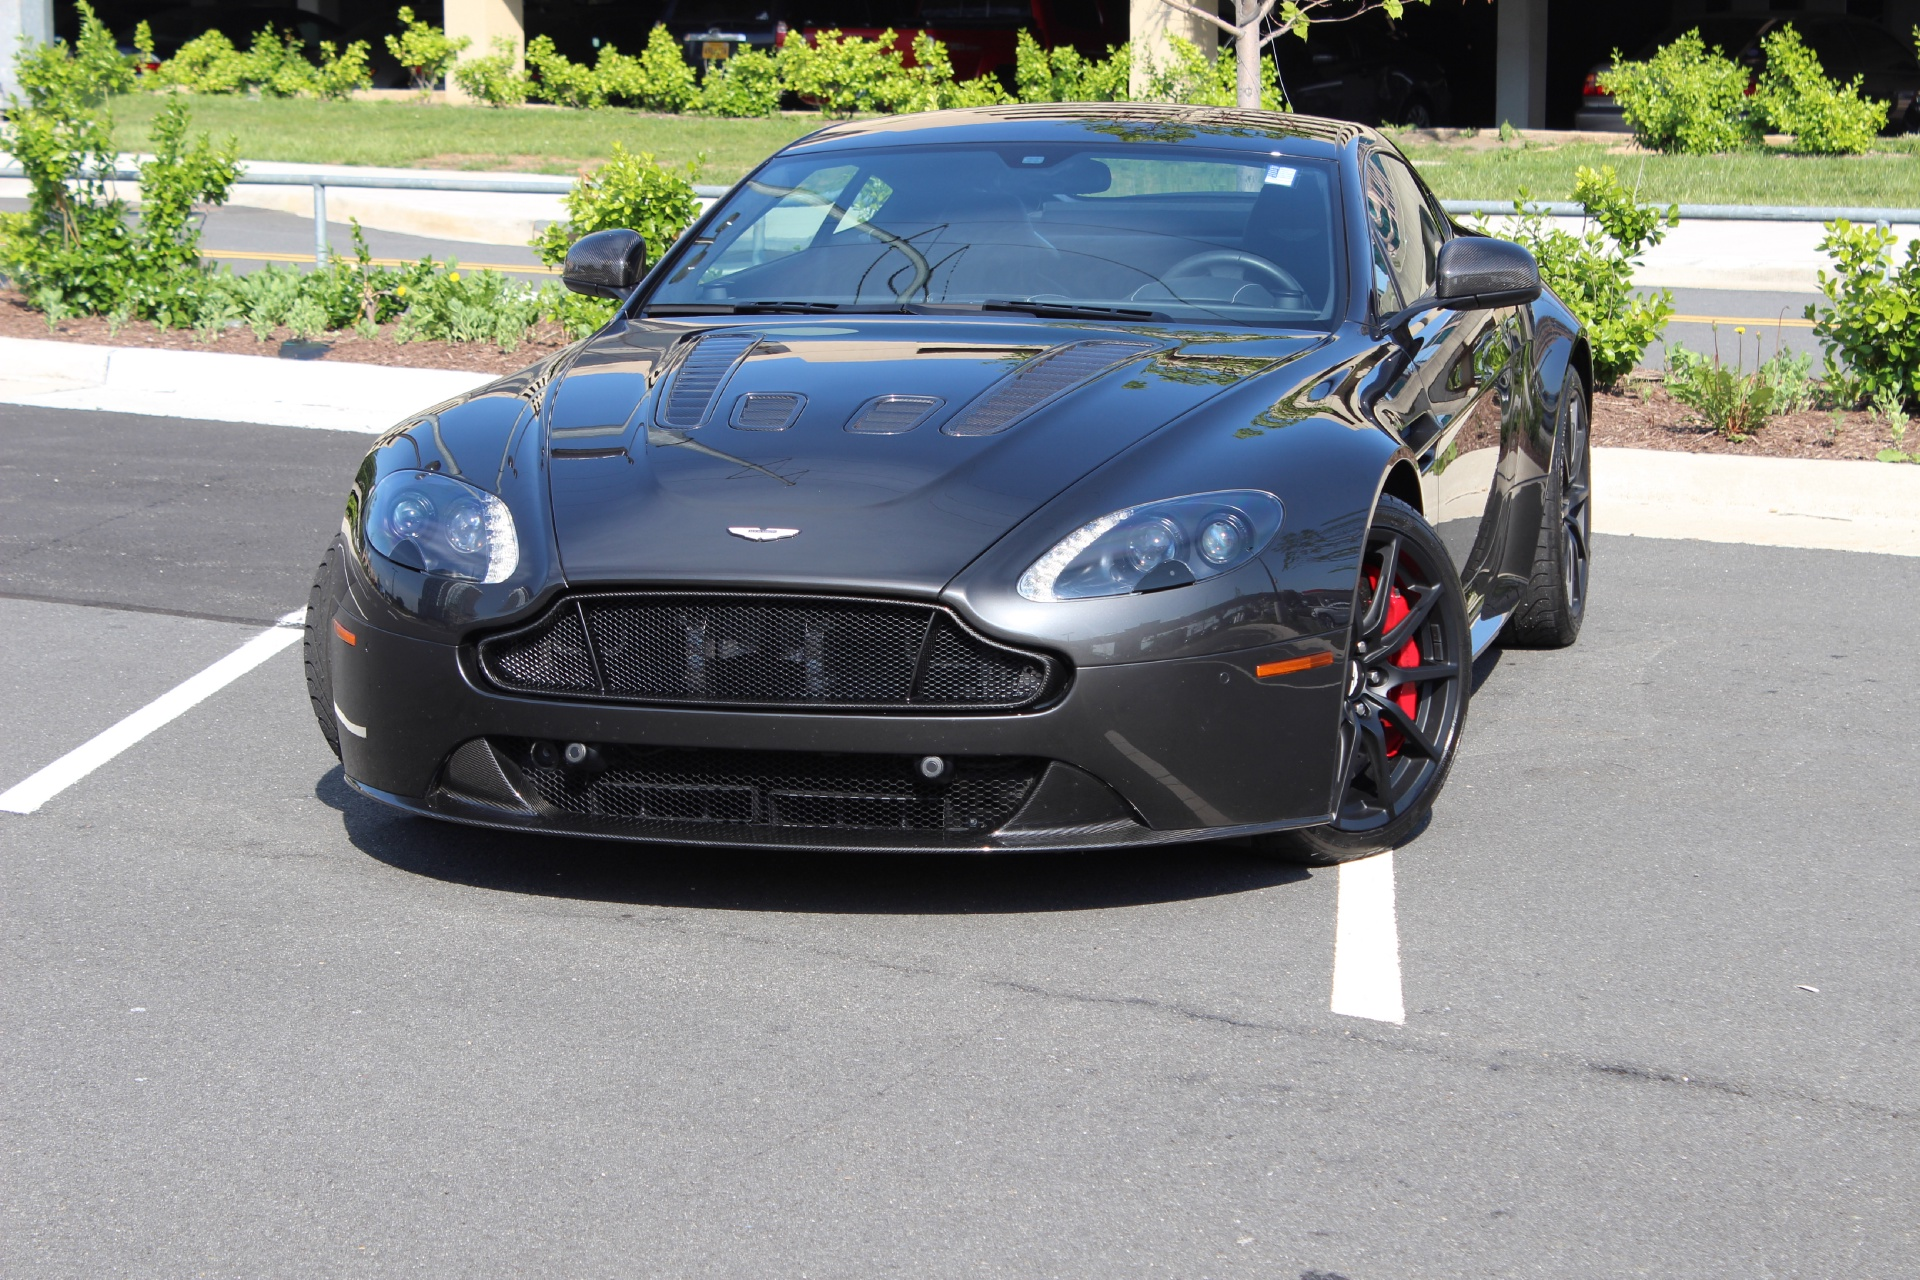 2015 aston martin v12 vantage stock # 6w000572a for sale near vienna